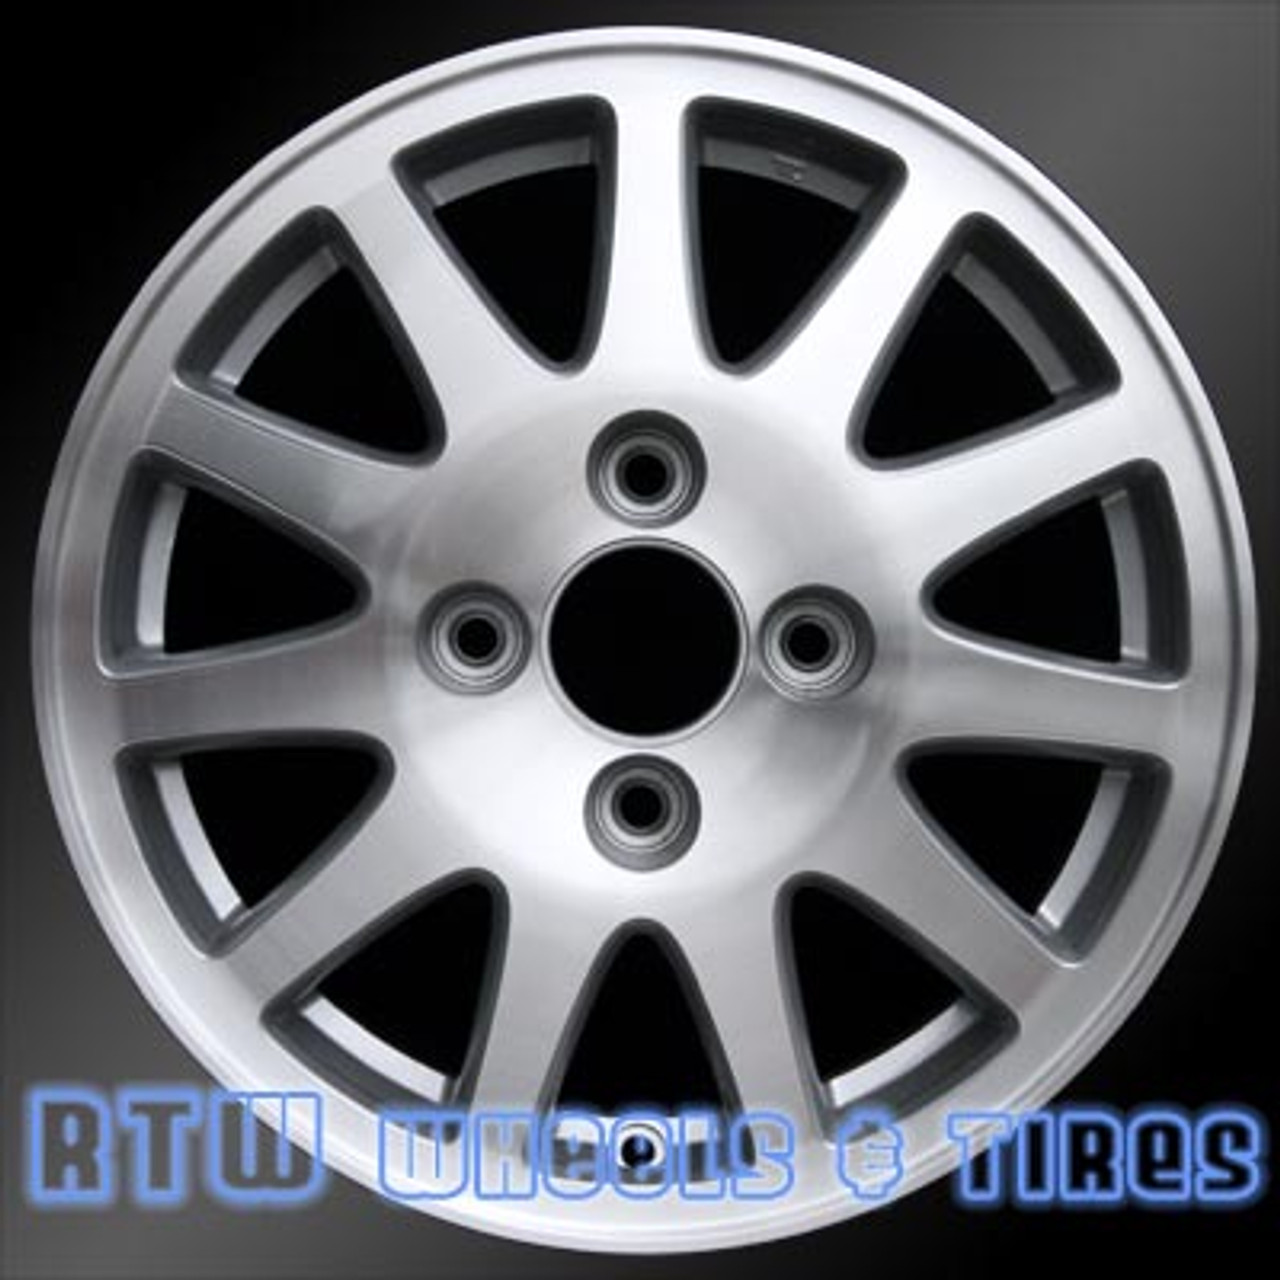 Acura Tl Wheels >> Acura Tl Wheels For Sale 1997 1998 15 Machined Silver Rims 71708